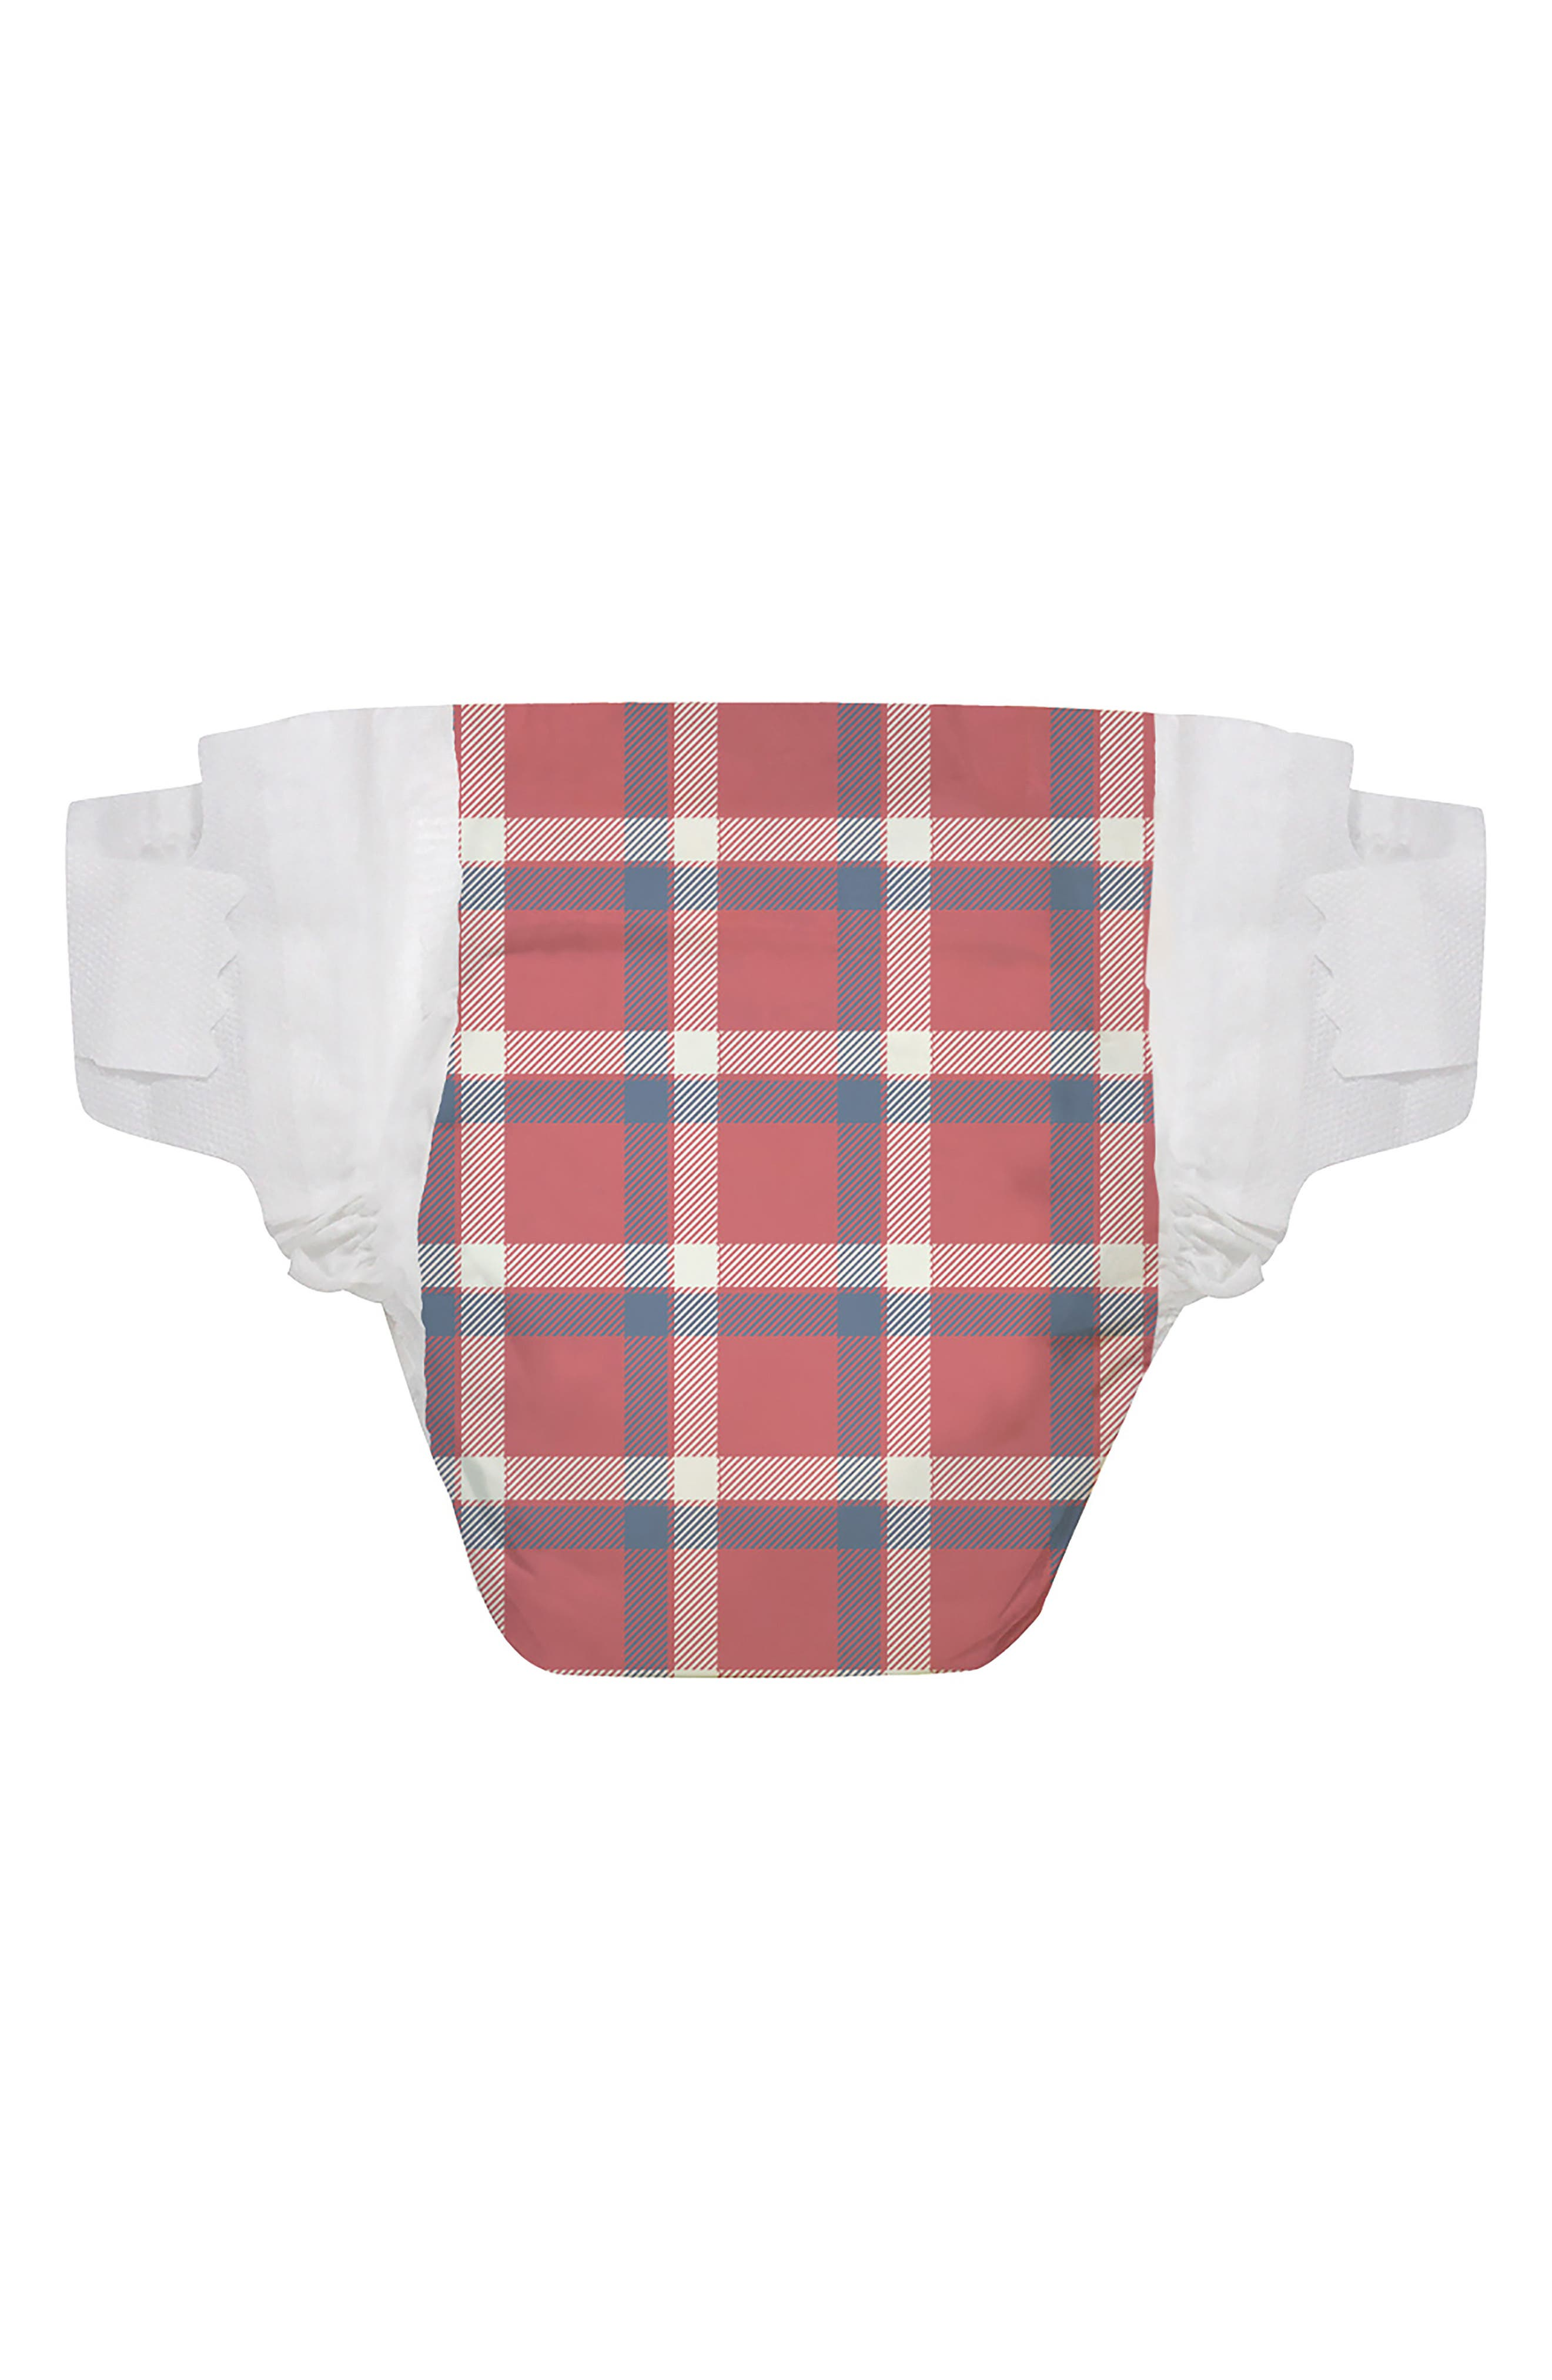 x THE GREAT. The Camper Plaid Diapers,                             Main thumbnail 1, color,                             Camper Plaid